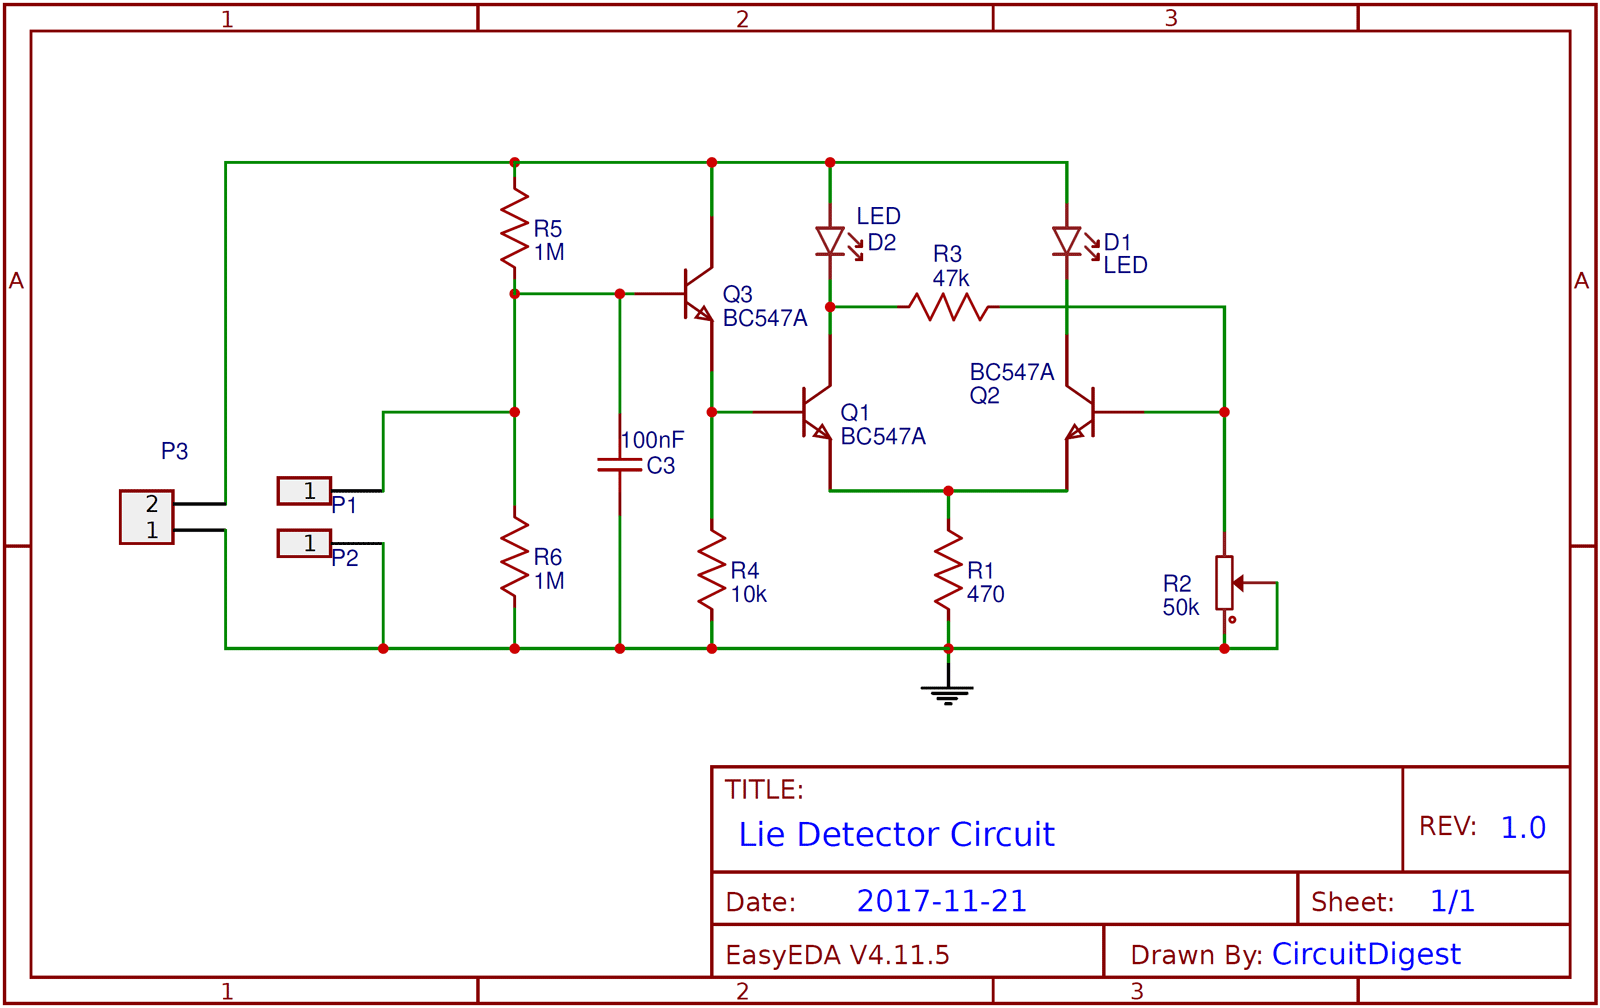 Simple Lie Detector Circuit Diagram Electronic Diagrams In Led Circuits And Projects Electronics Gadgets